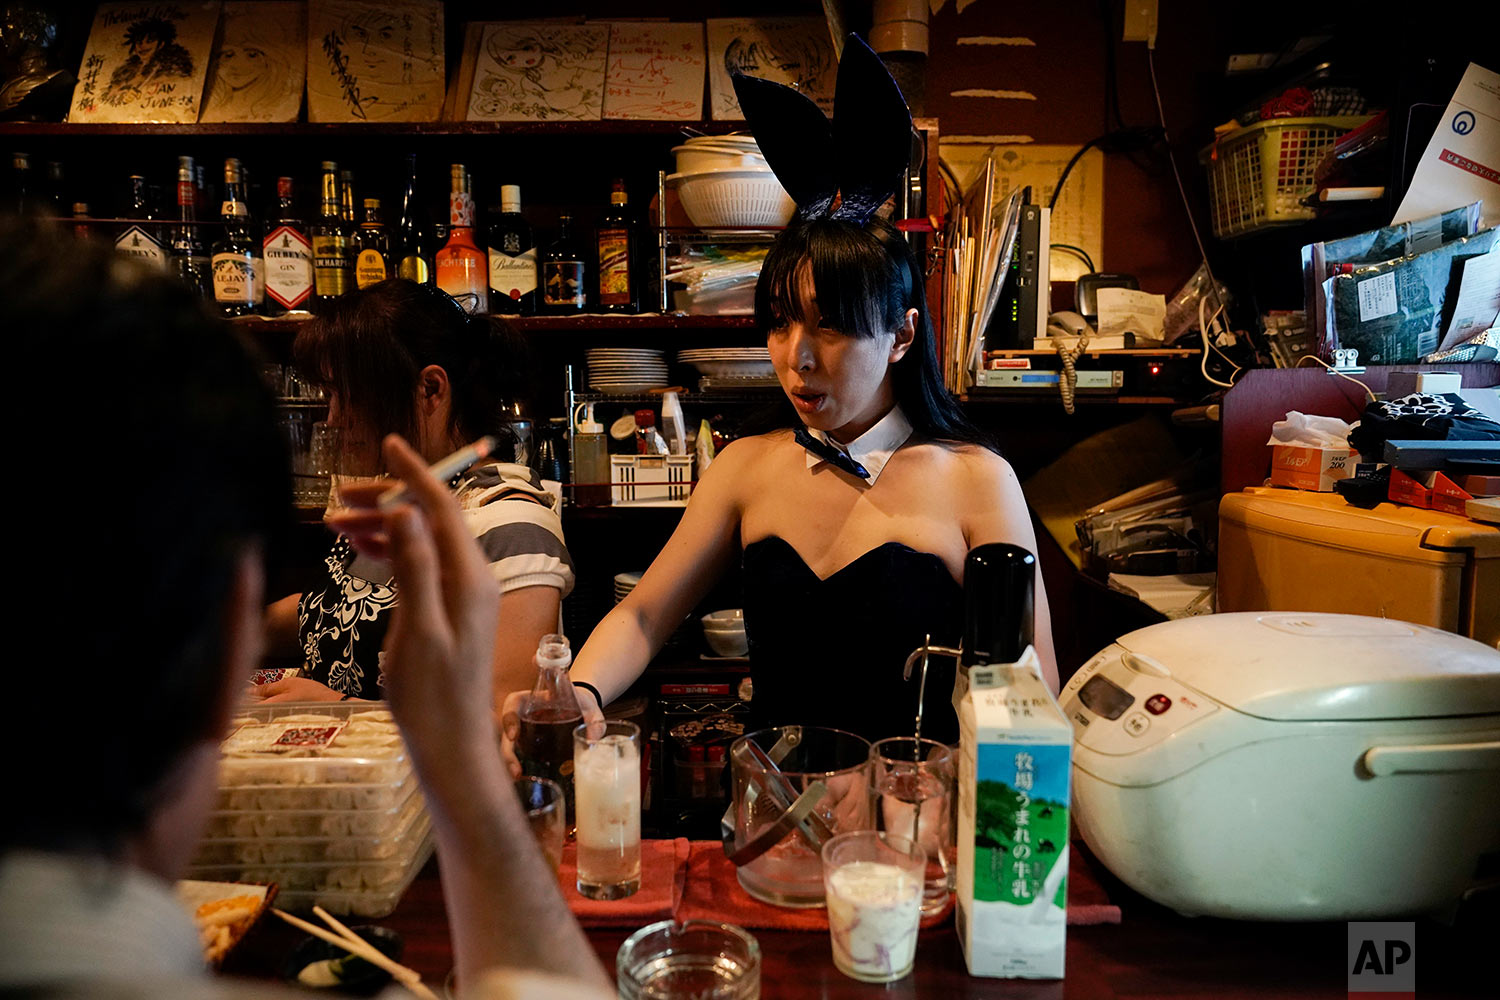 A bartender, in costume, prepares a drink for a patron in a bar at the Golden Gai in the Shinjuku district of Tokyo, July 26, 2019. (AP Photo/Jae C. Hong)